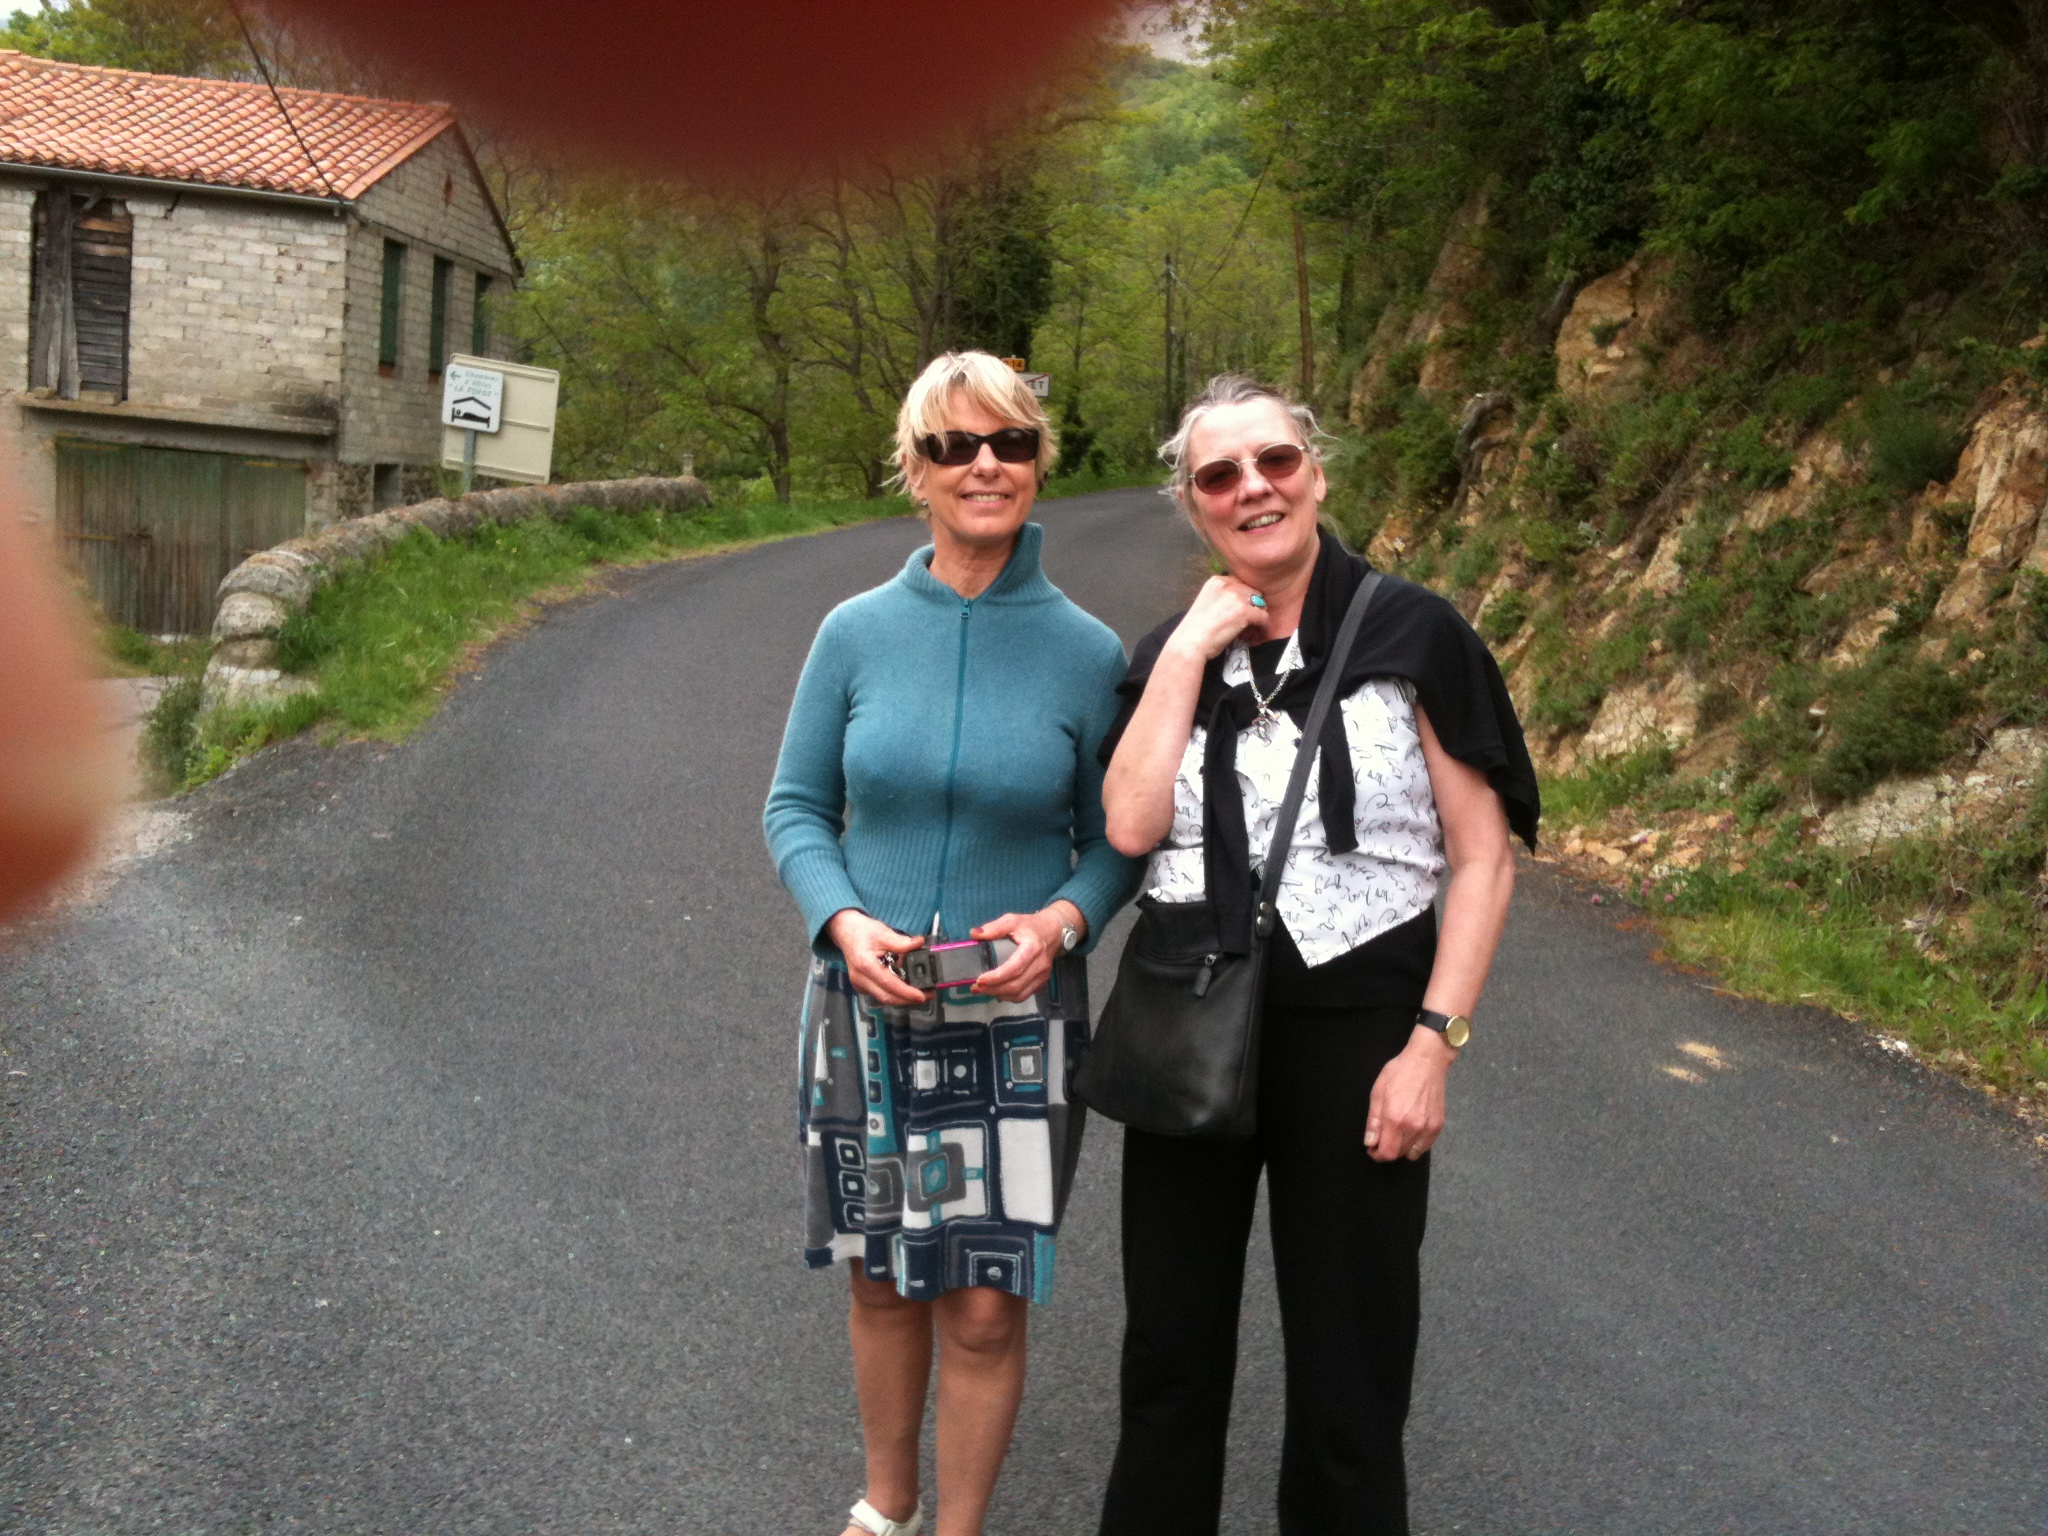 2015 - With Momo Didier, Mosset, France